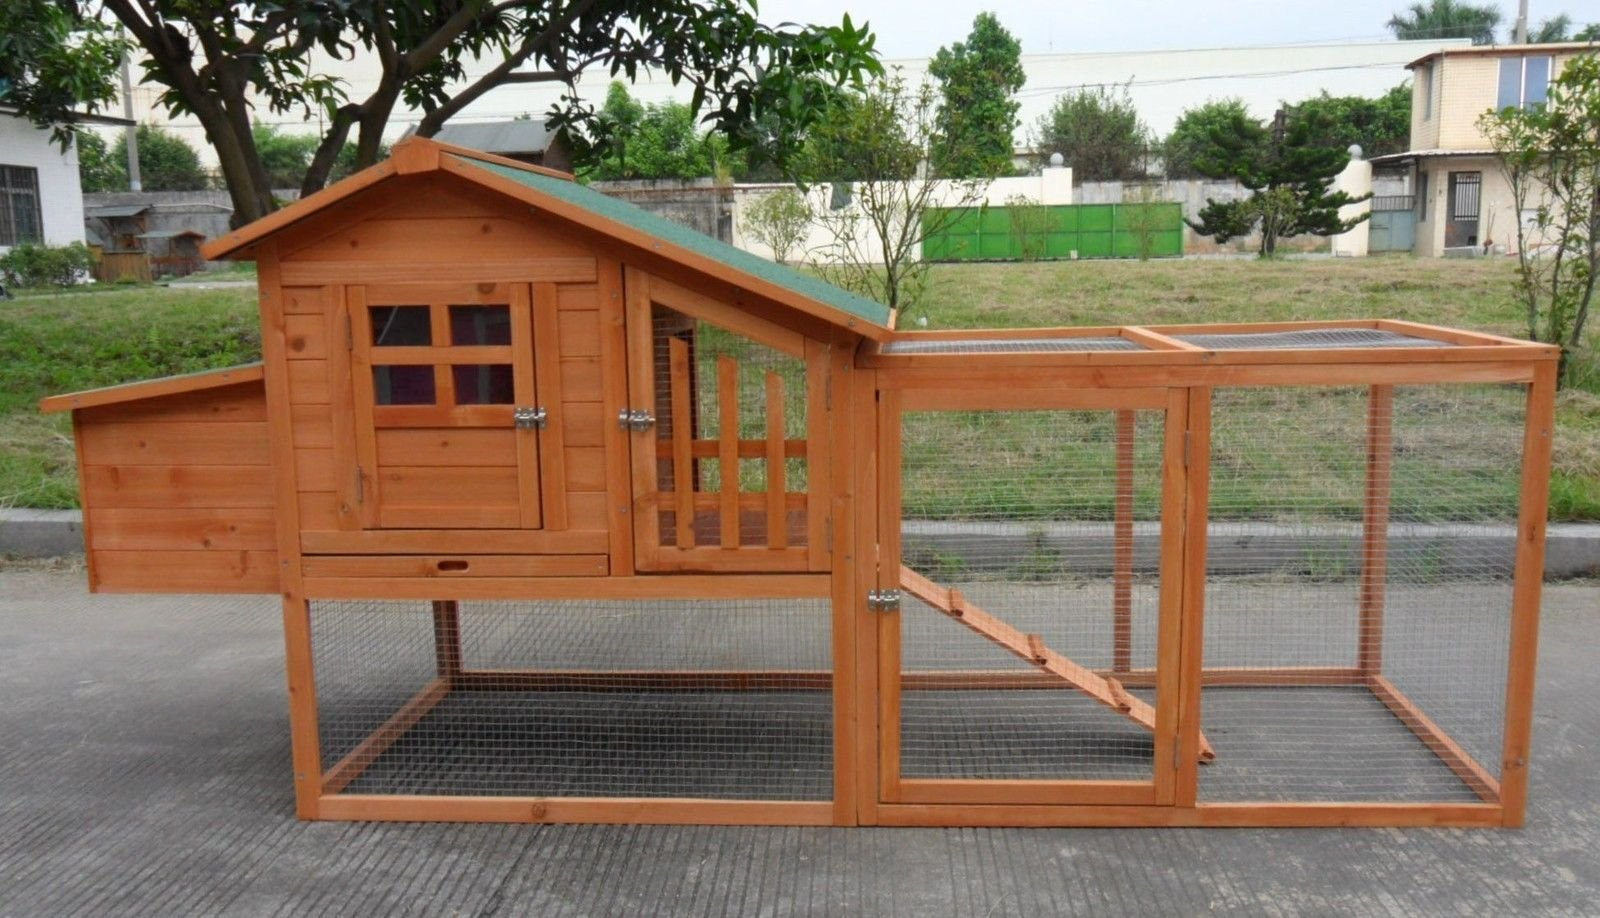 ChickenCoopOutlet Deluxe Large Wood Chicken Coop Backyard Hen House 3-5 Chickens w Nesting Box Run